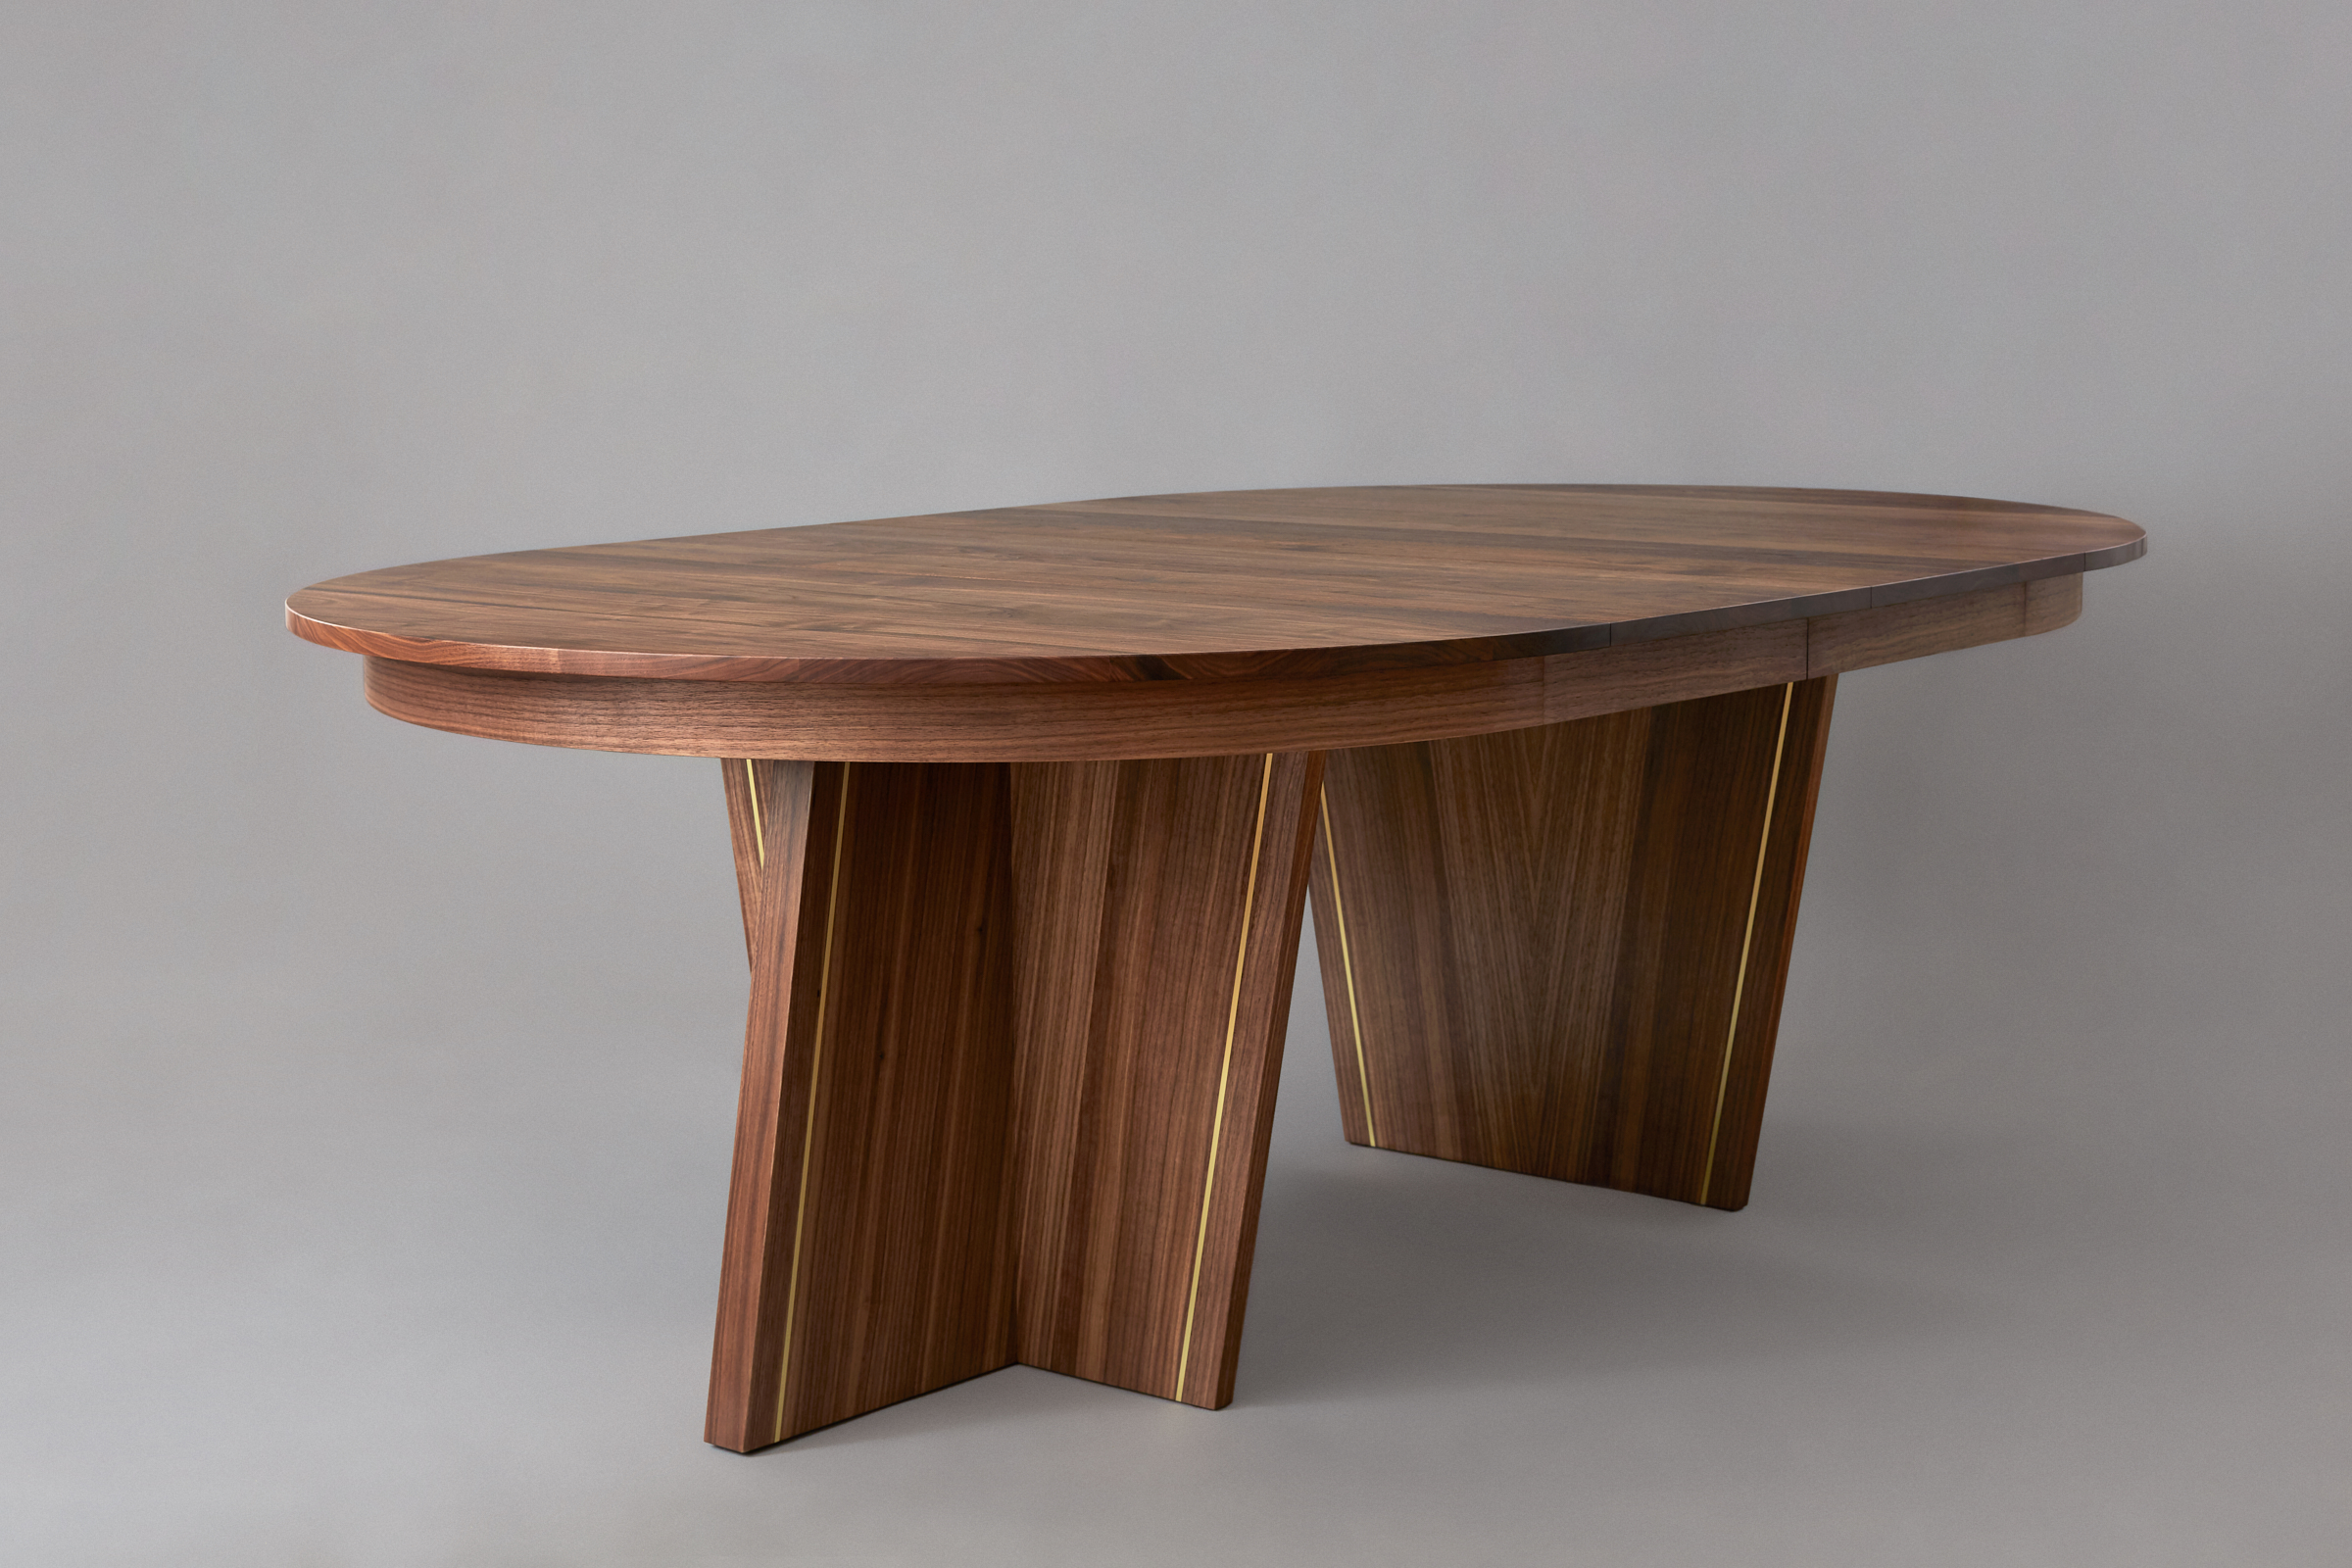 JamieHerman-Table_02.jpg